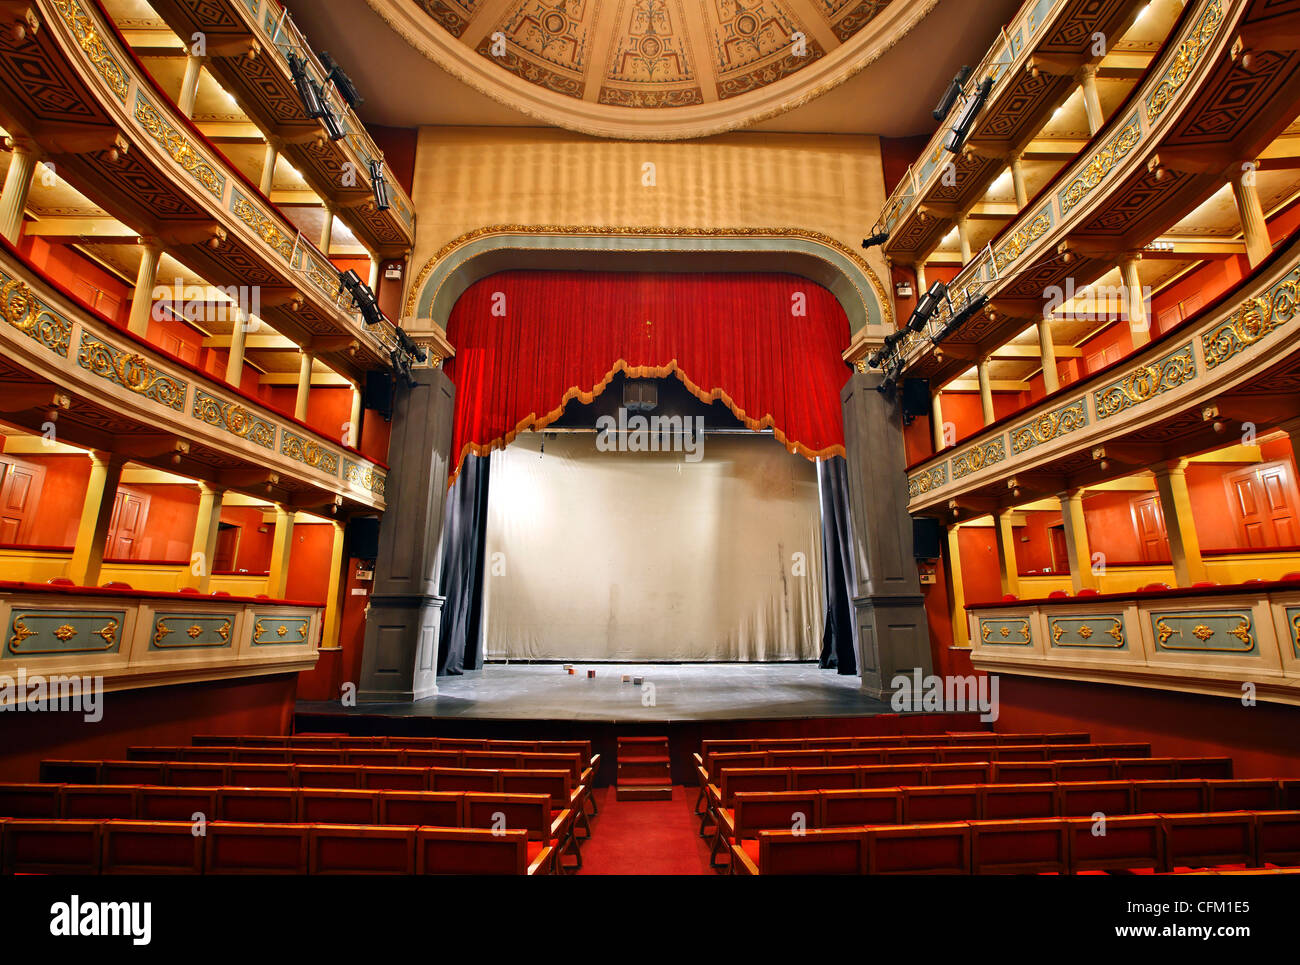 Inside view of the Apollo Municipal Theater, of the city of Patras, Achaia, Peloponnese, Greece. - Stock Image